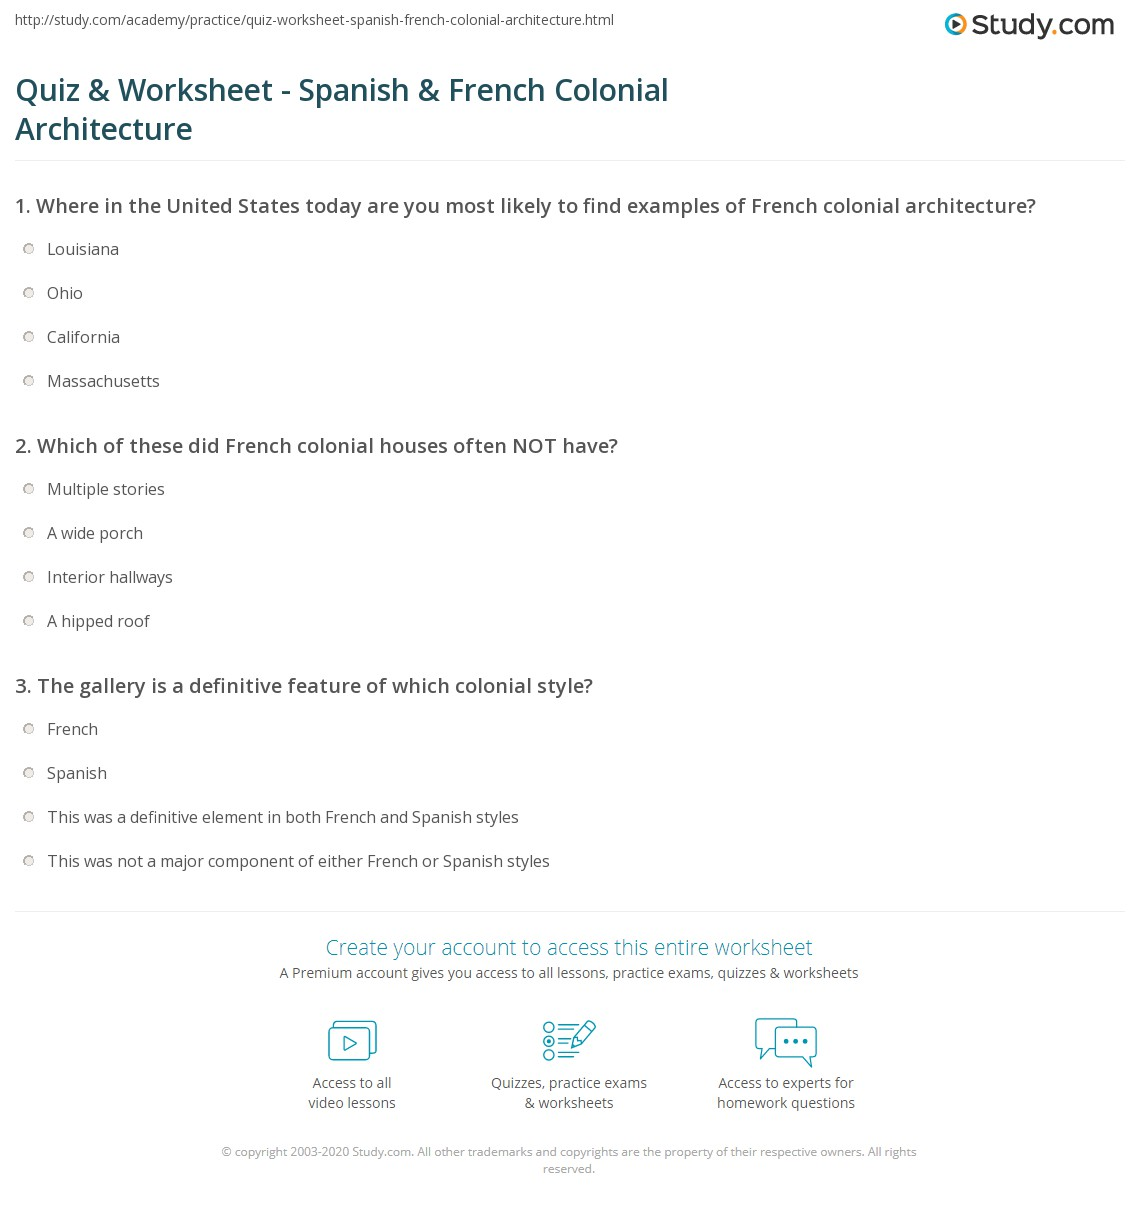 Print Characteristics Of Colonial Architecture Spanish French Worksheet